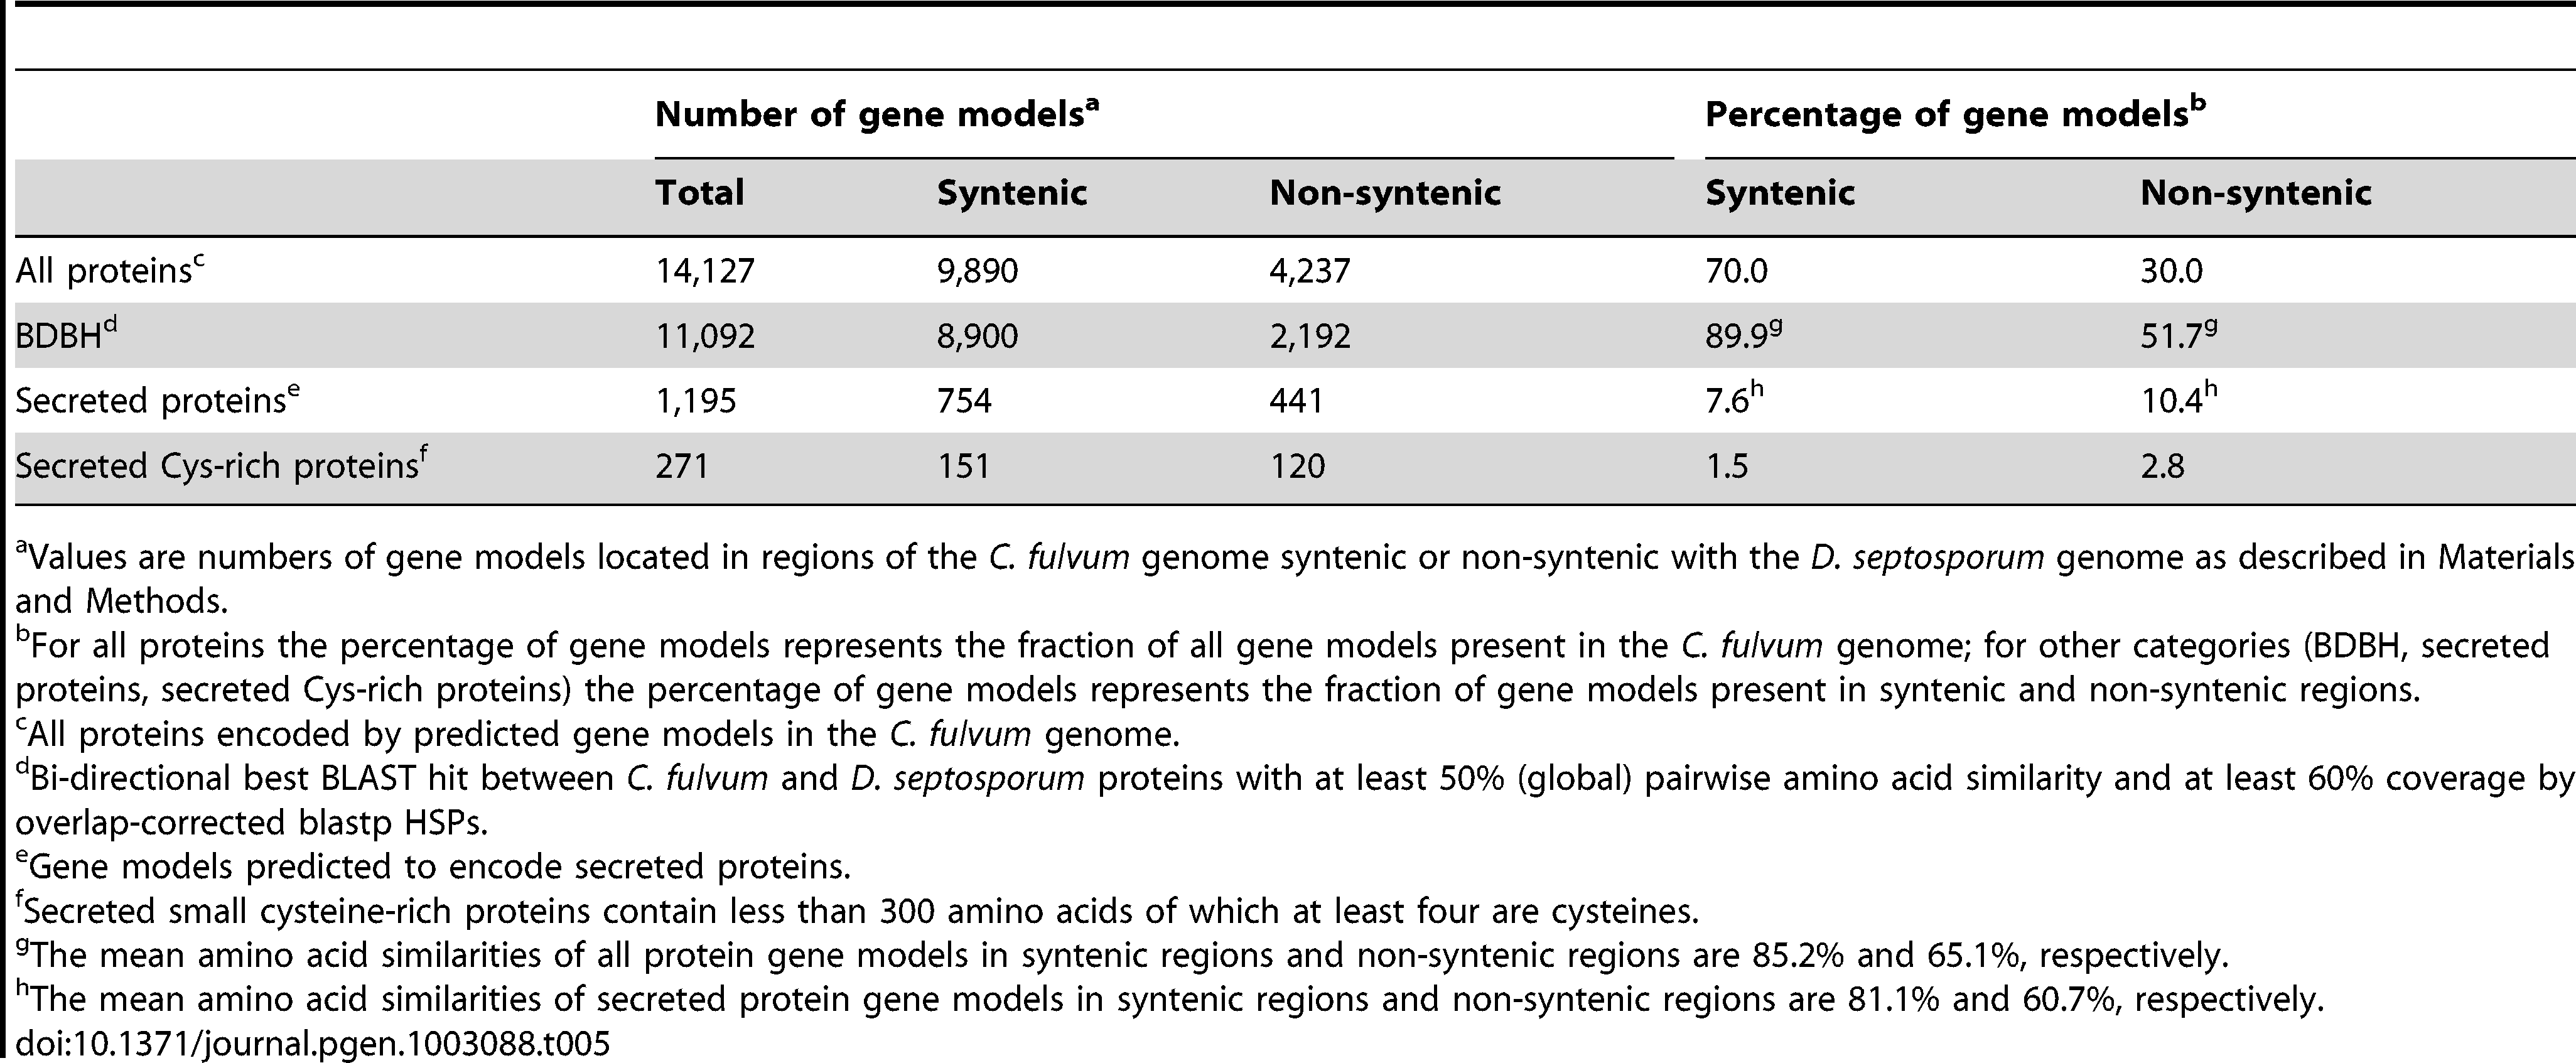 Location of gene models of <i>C. fulvum</i> in regions syntenic or non-syntenic with the <i>D. septosporum</i> genome.